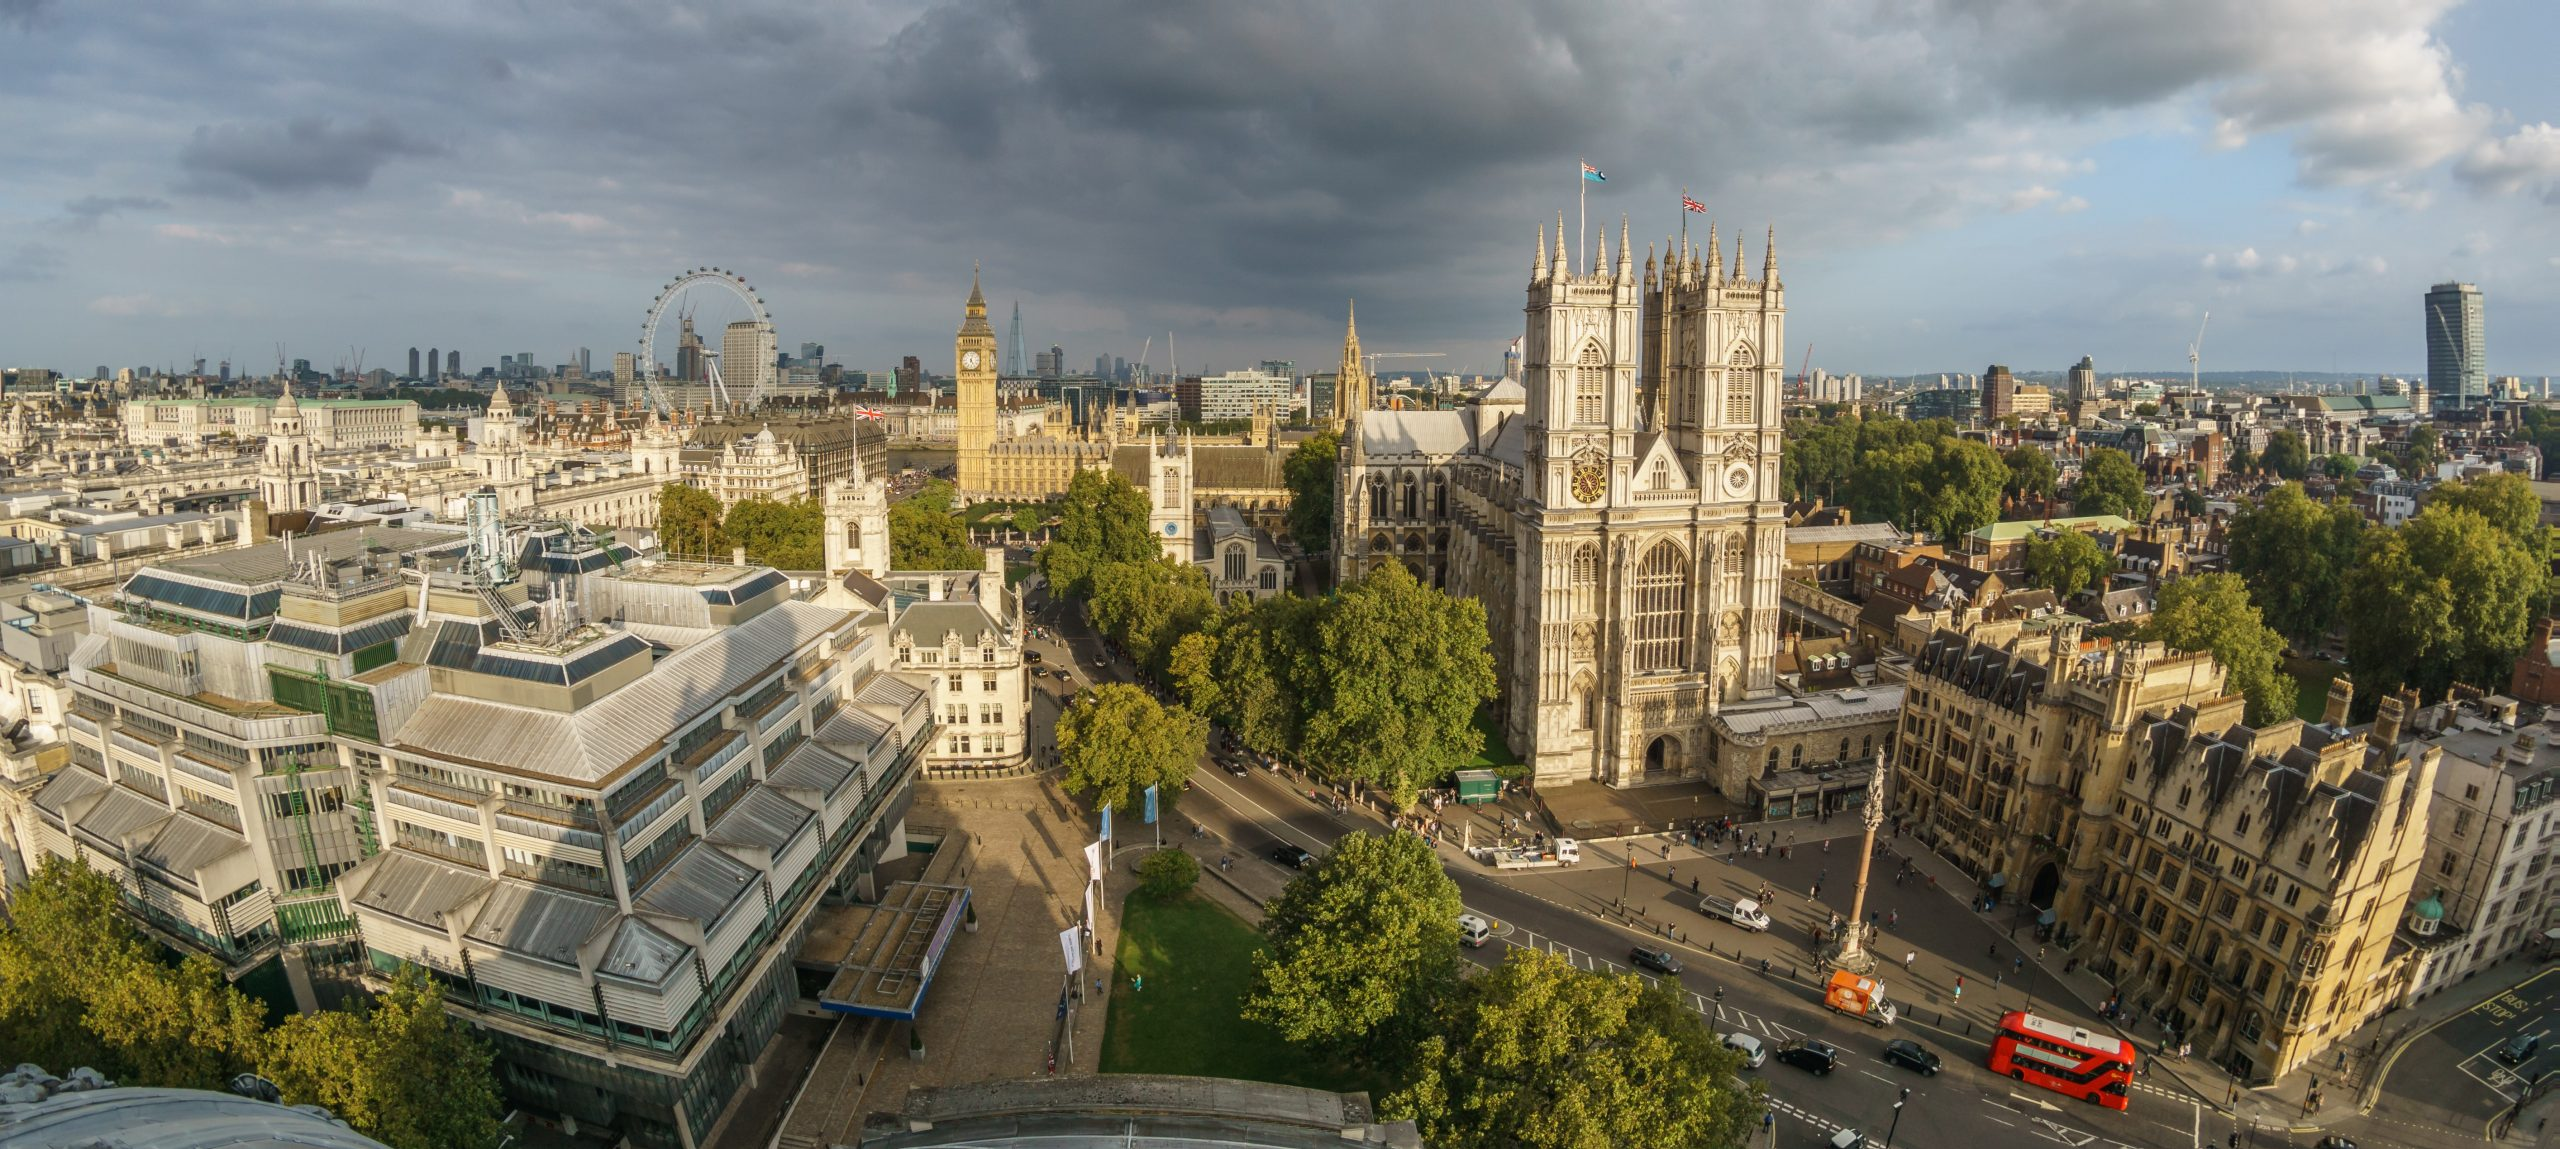 westminster_history_featured_image